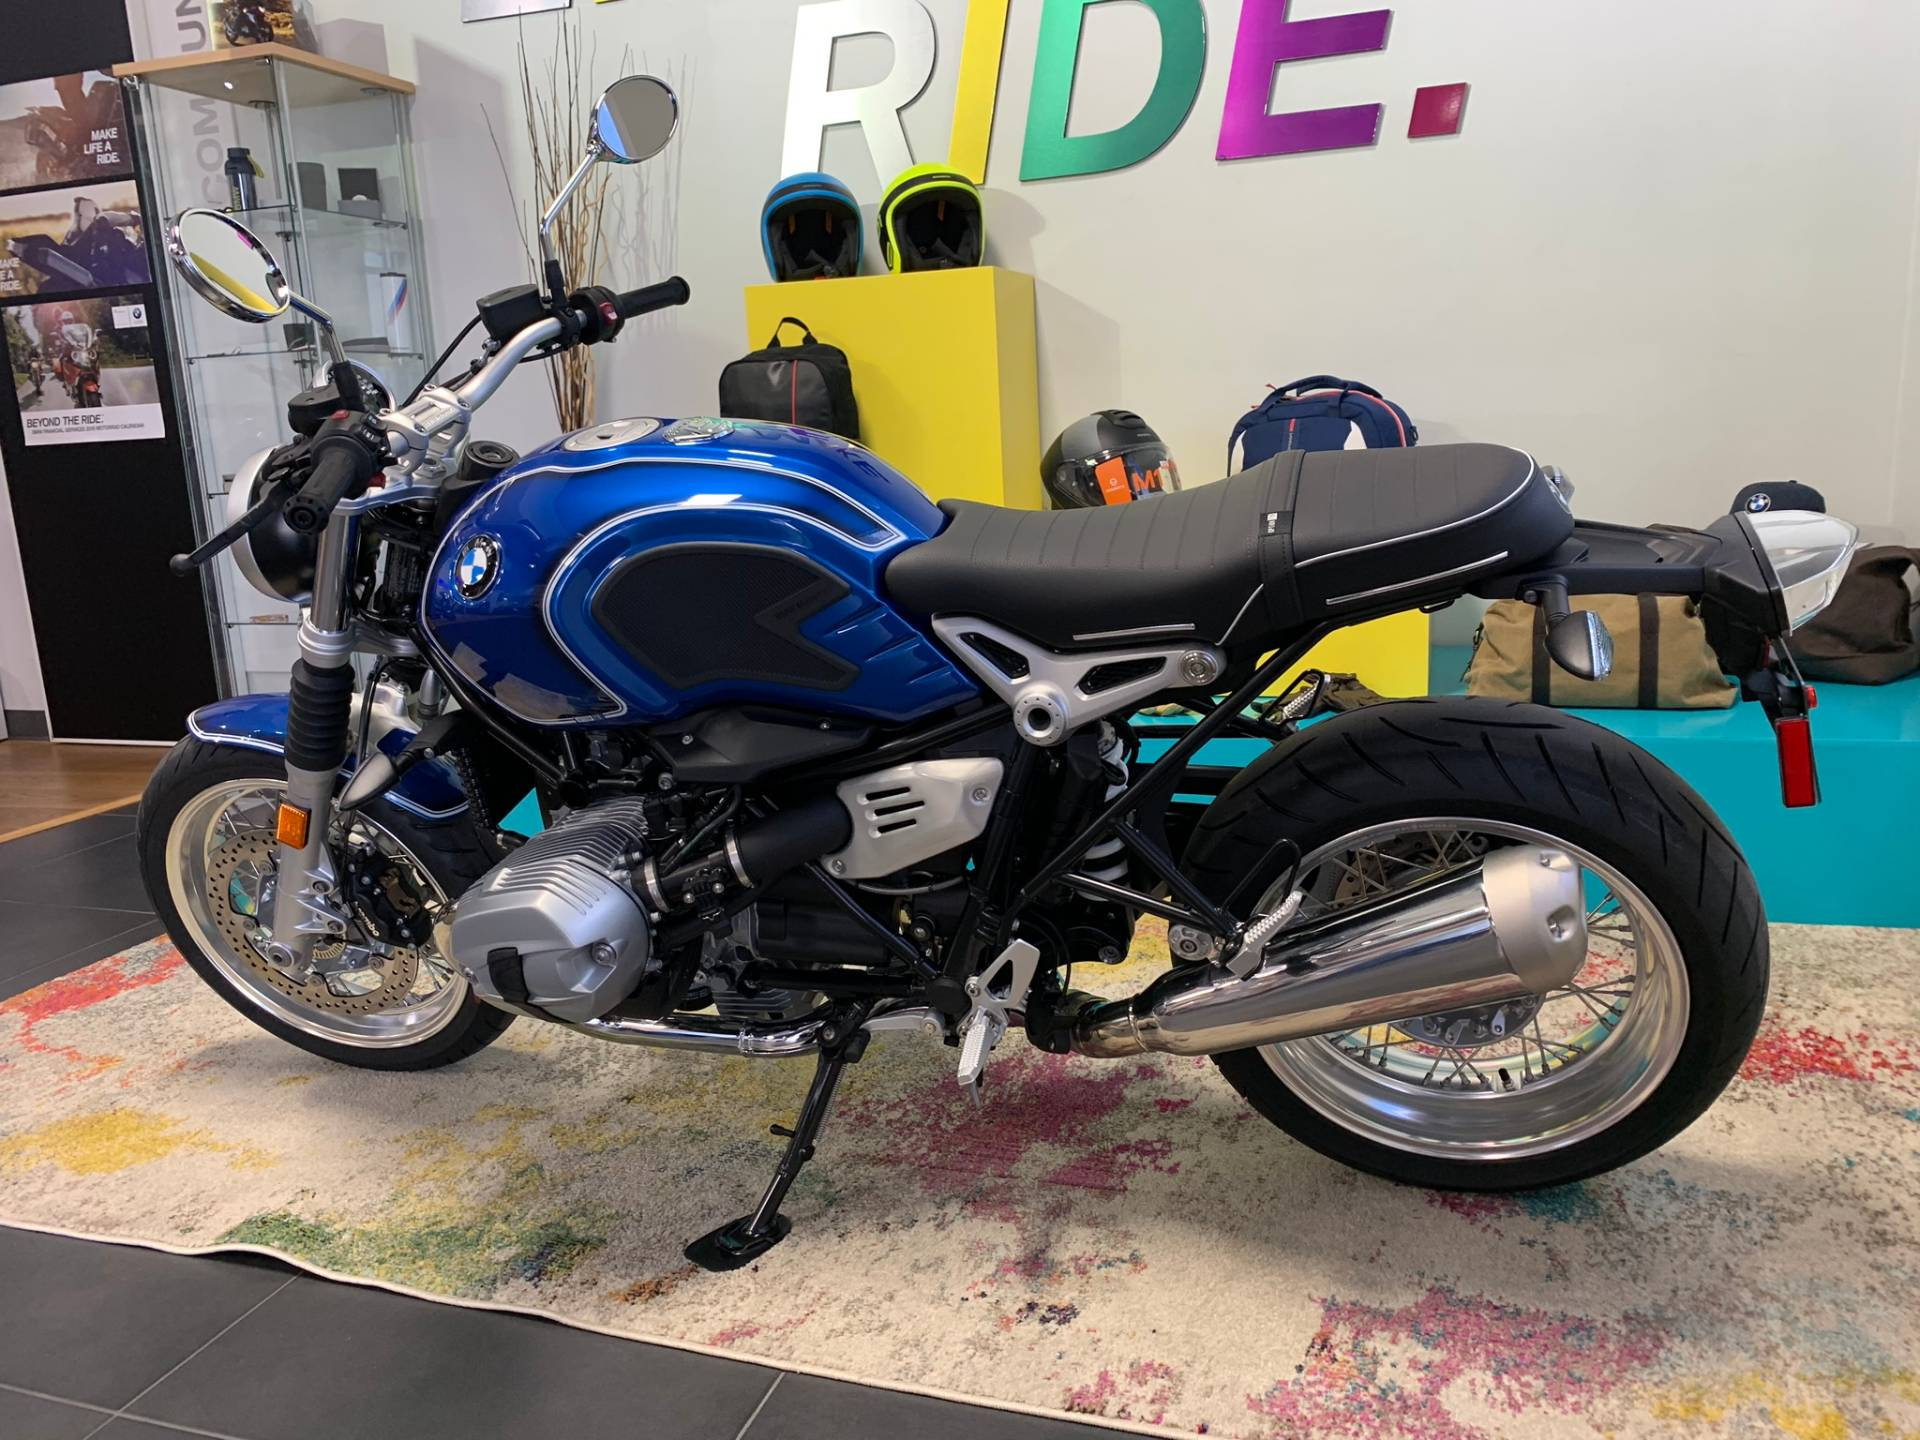 New 2020 2019 BMW R NineT for sale, BMW for sale, BMW Motorcycle Café Racer, new BMW Caffe, Cafe Racer, BMW. BMW Motorcycles of Miami, Motorcycles of Miami, Motorcycles Miami, New Motorcycles, Used Motorcycles, pre-owned. #BMWMotorcyclesOfMiami #MotorcyclesOfMiami. - Photo 30